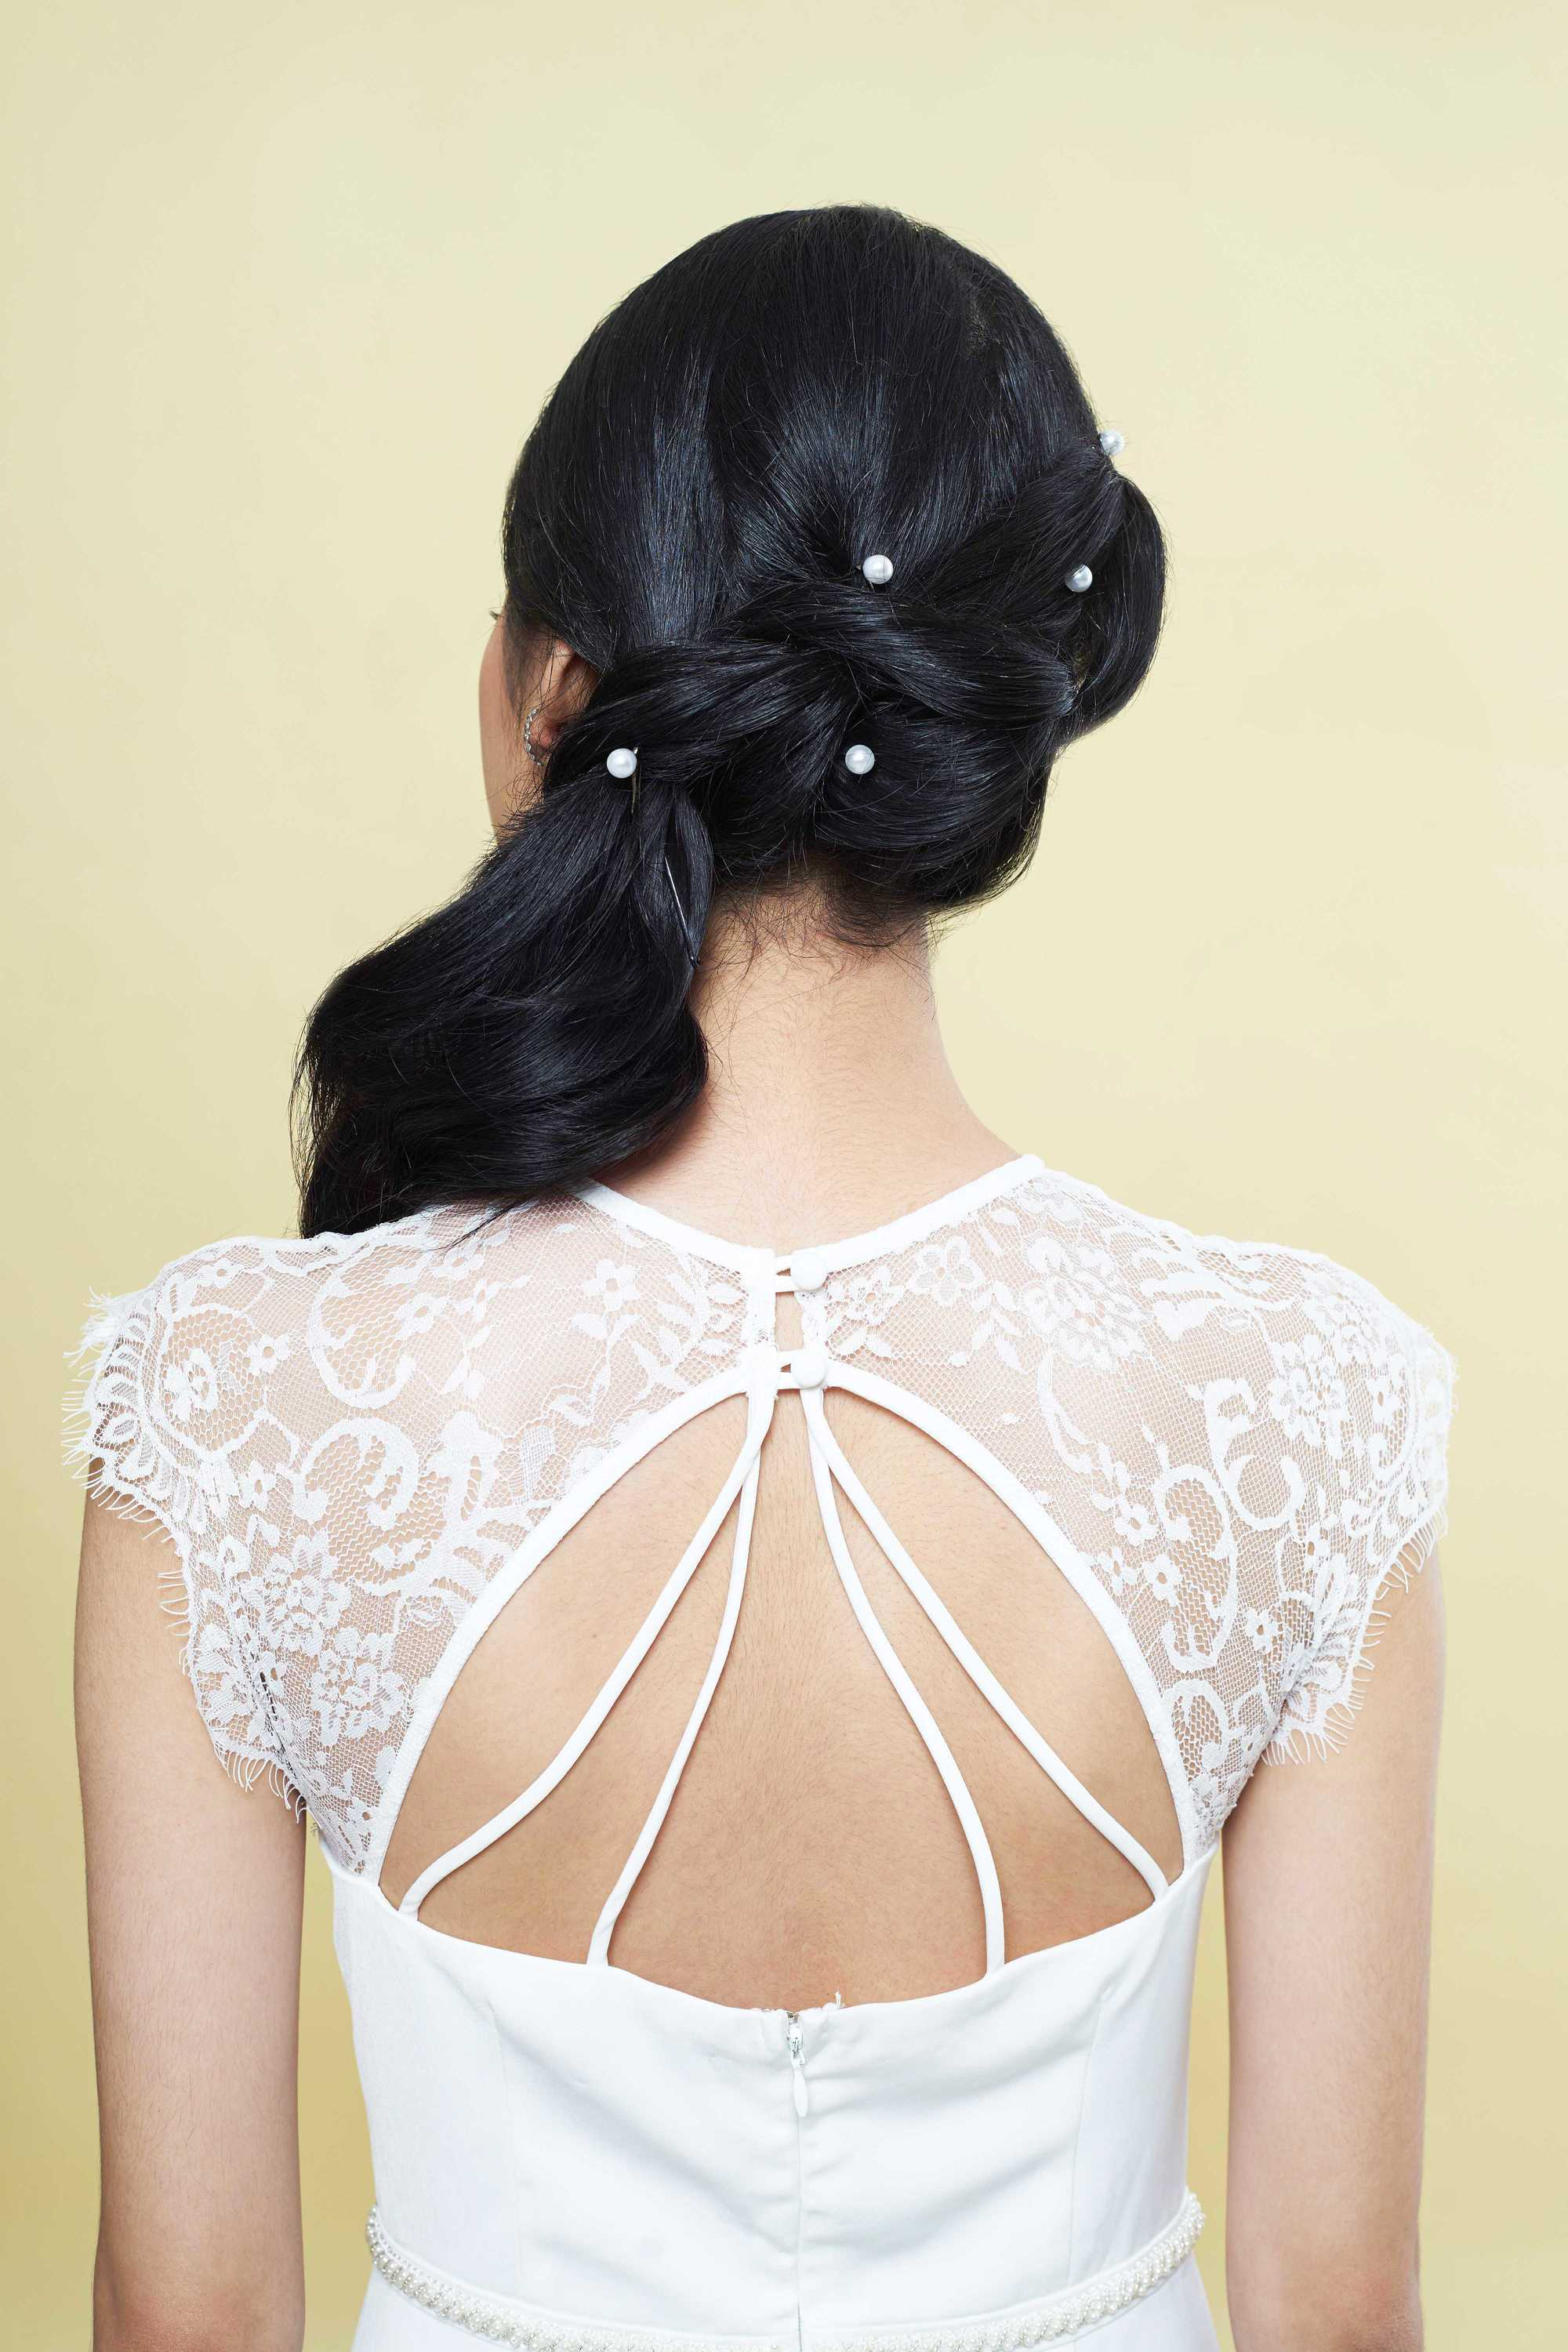 wedding hair updo: back view of a woman with long dark hair in a side twisted ponytail with pearl accessories wearing a white back detail wedding dress